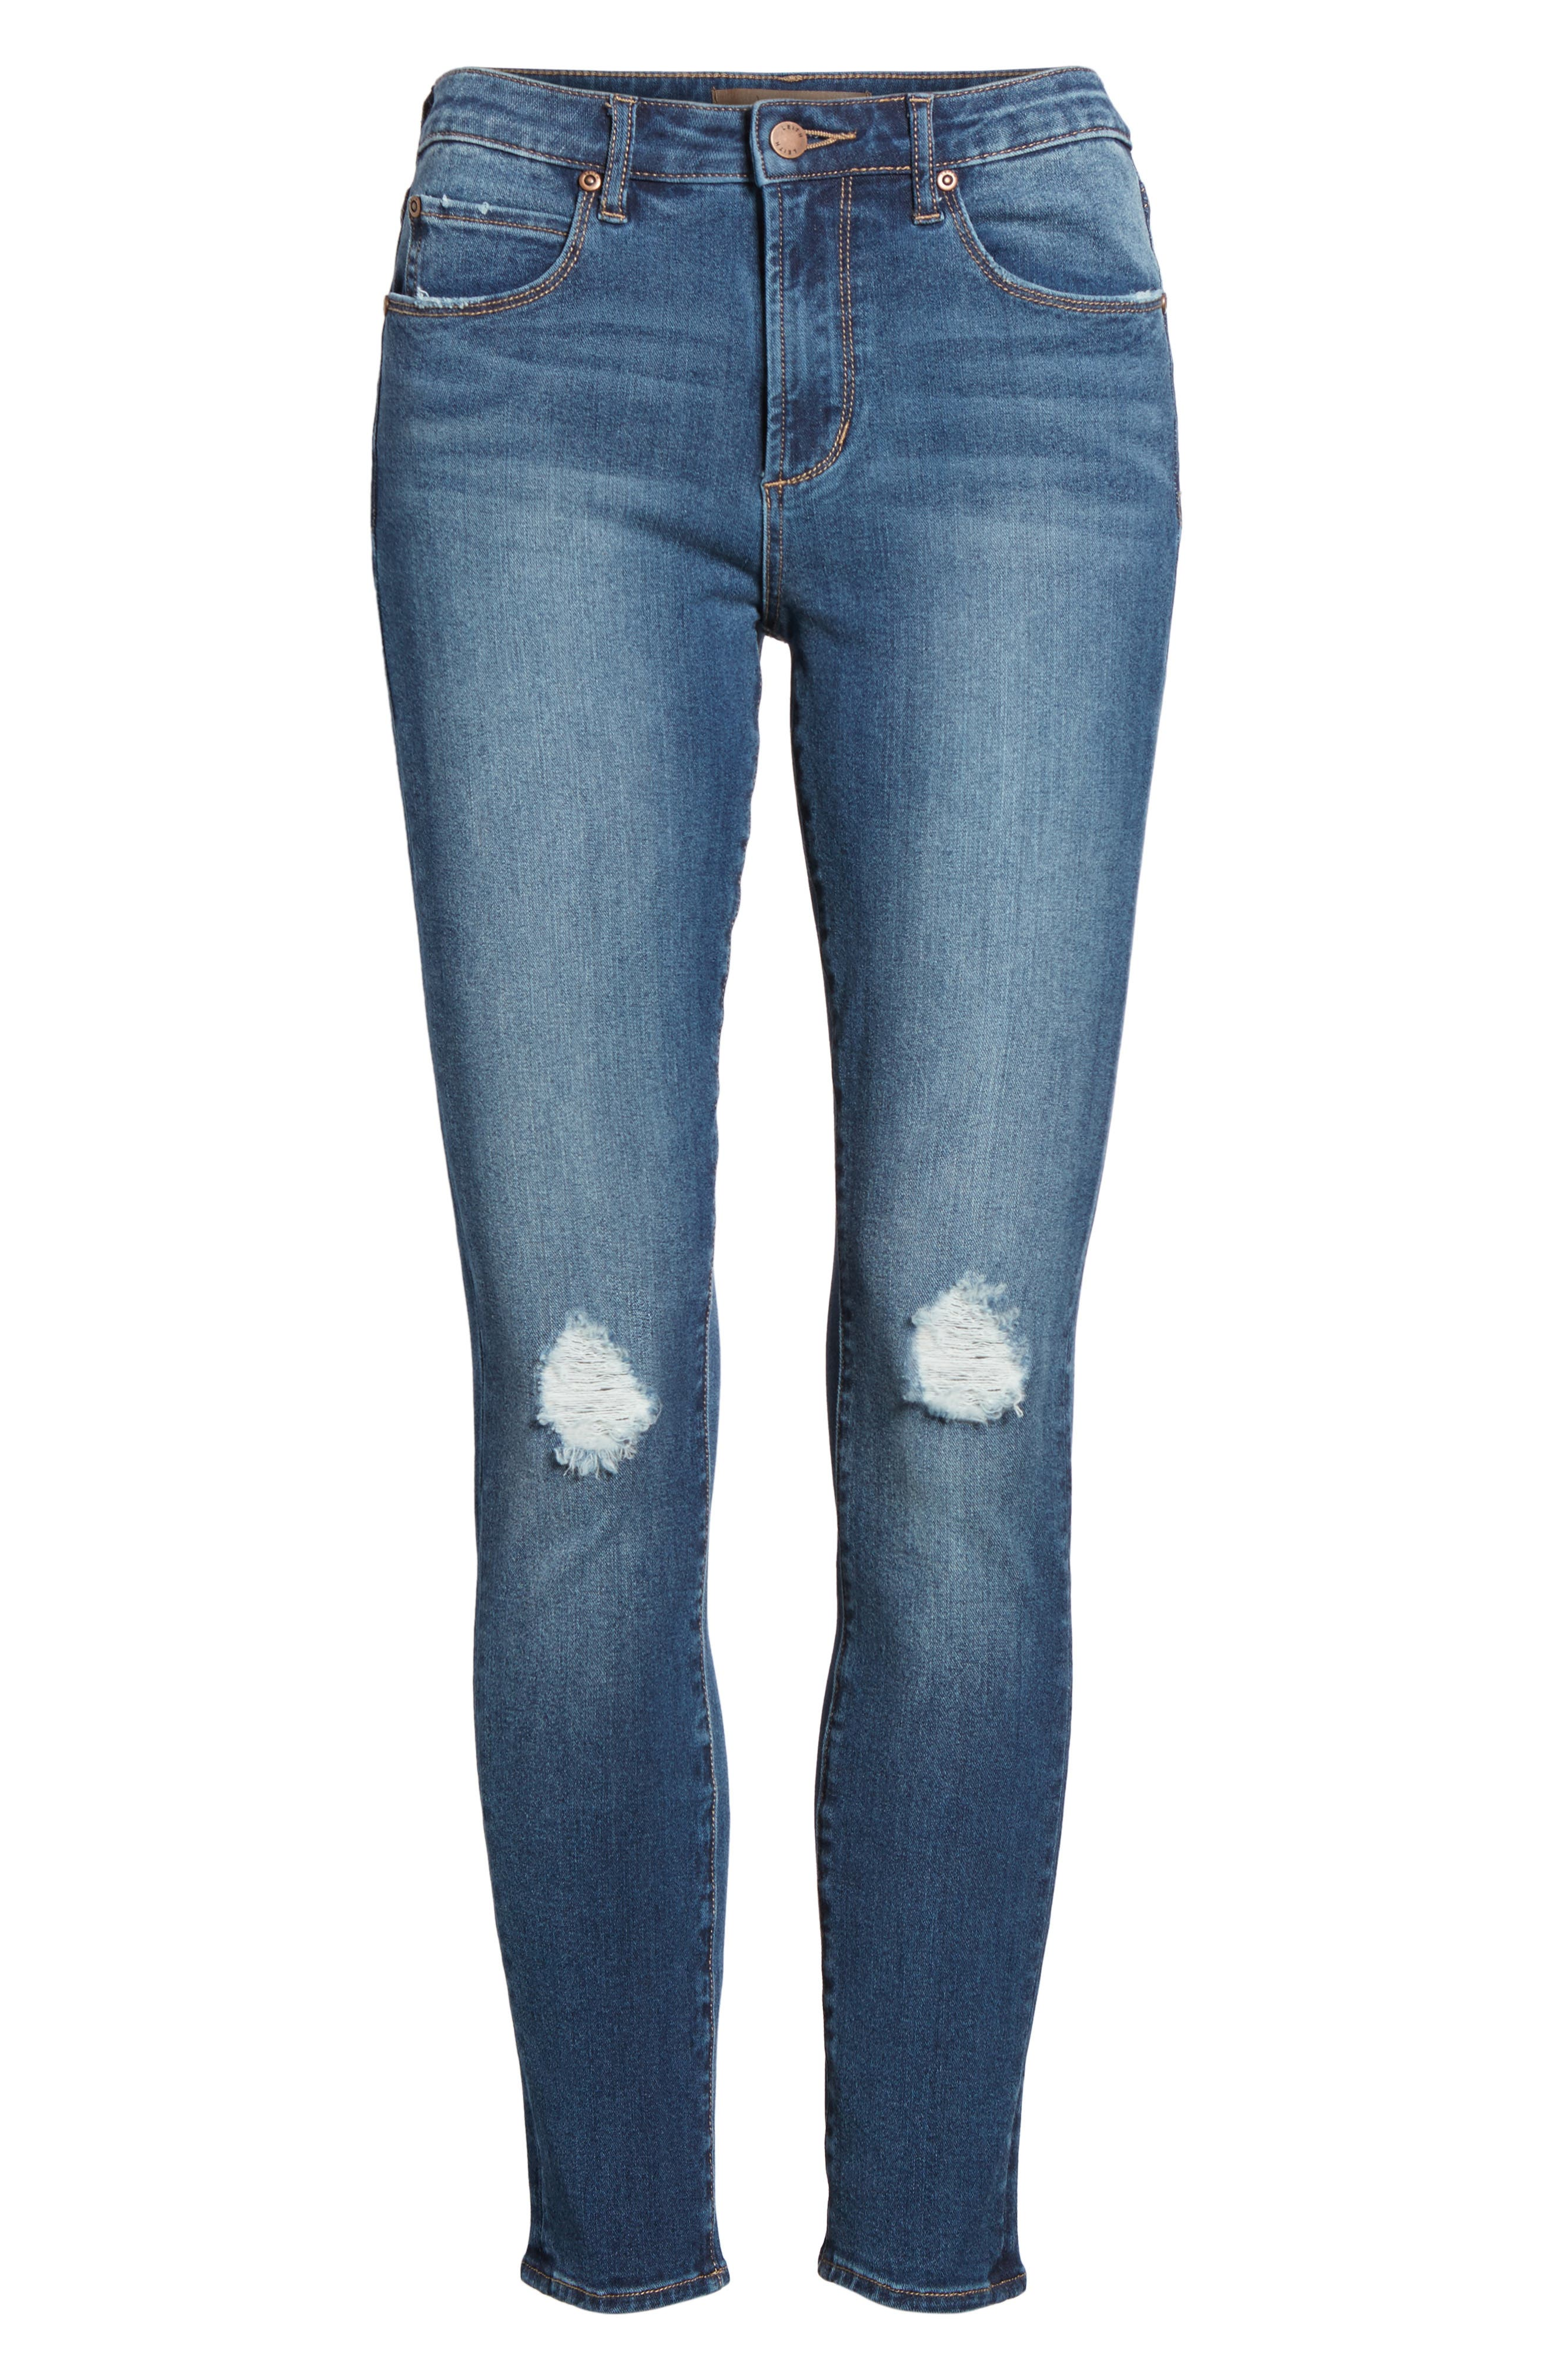 Distressed Skinny Ankle Jeans,                             Alternate thumbnail 7, color,                             420